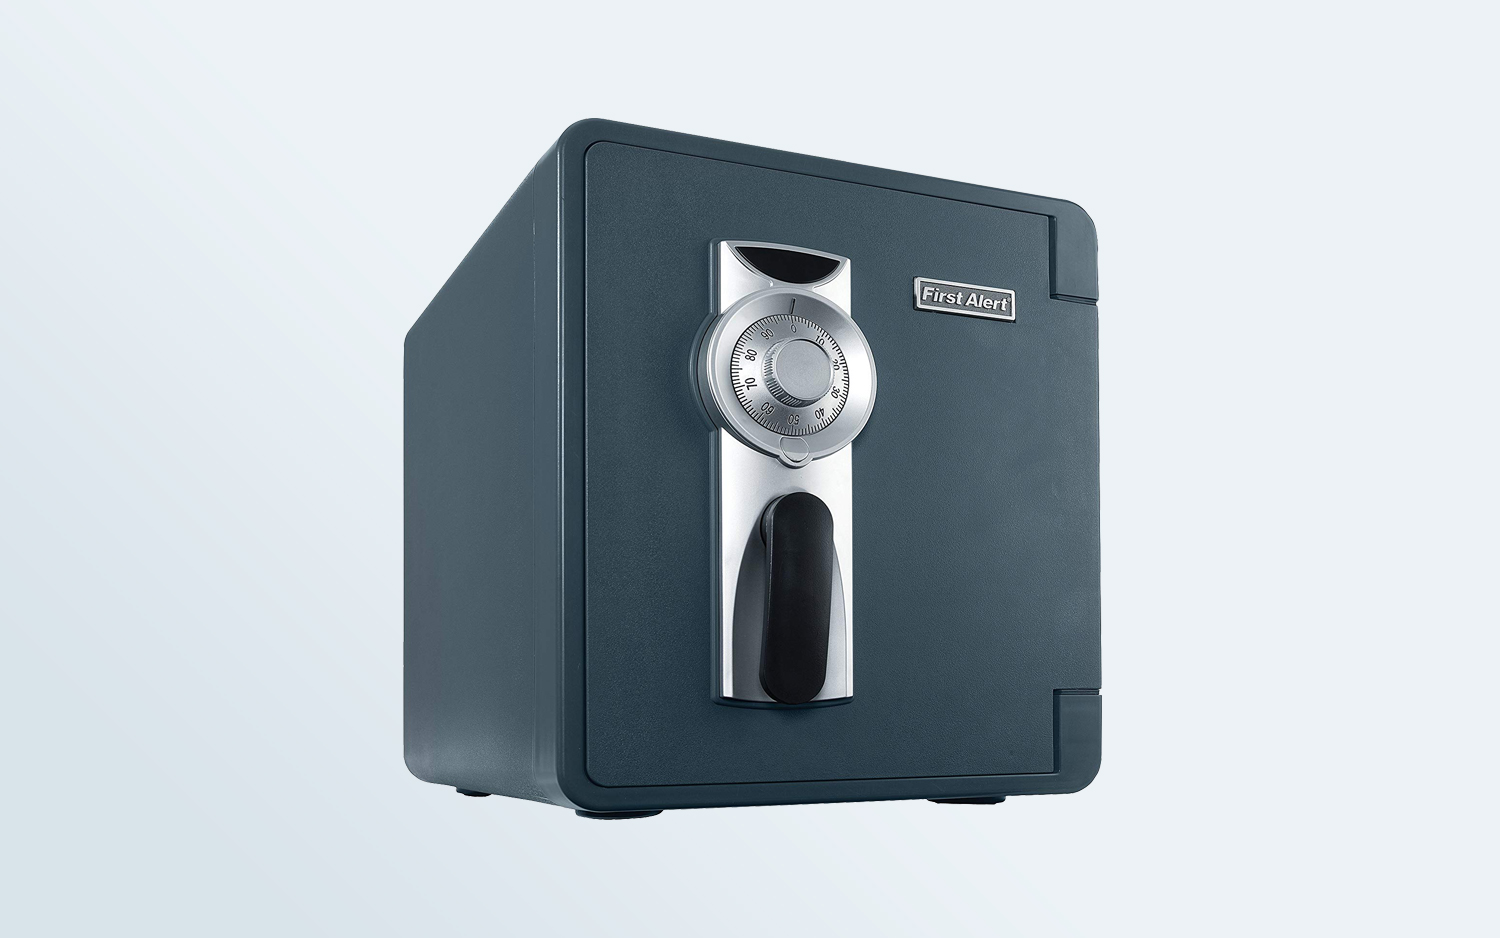 Best Home Safes 2019 - Reviews of Gun, Wall and Fireproof